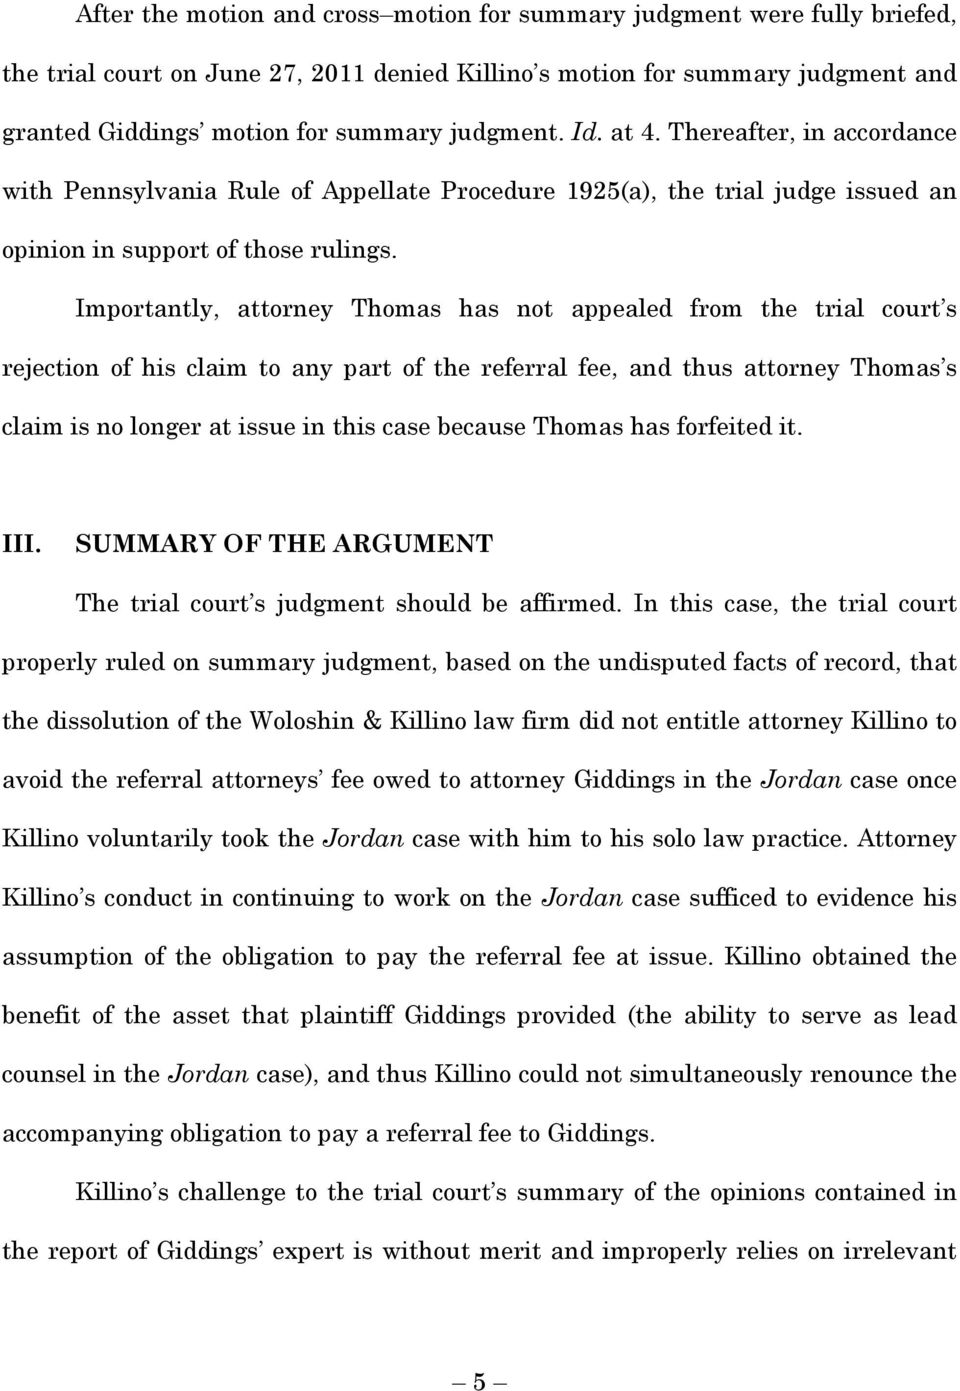 Importantly, attorney Thomas has not appealed from the trial court s rejection of his claim to any part of the referral fee, and thus attorney Thomas s claim is no longer at issue in this case